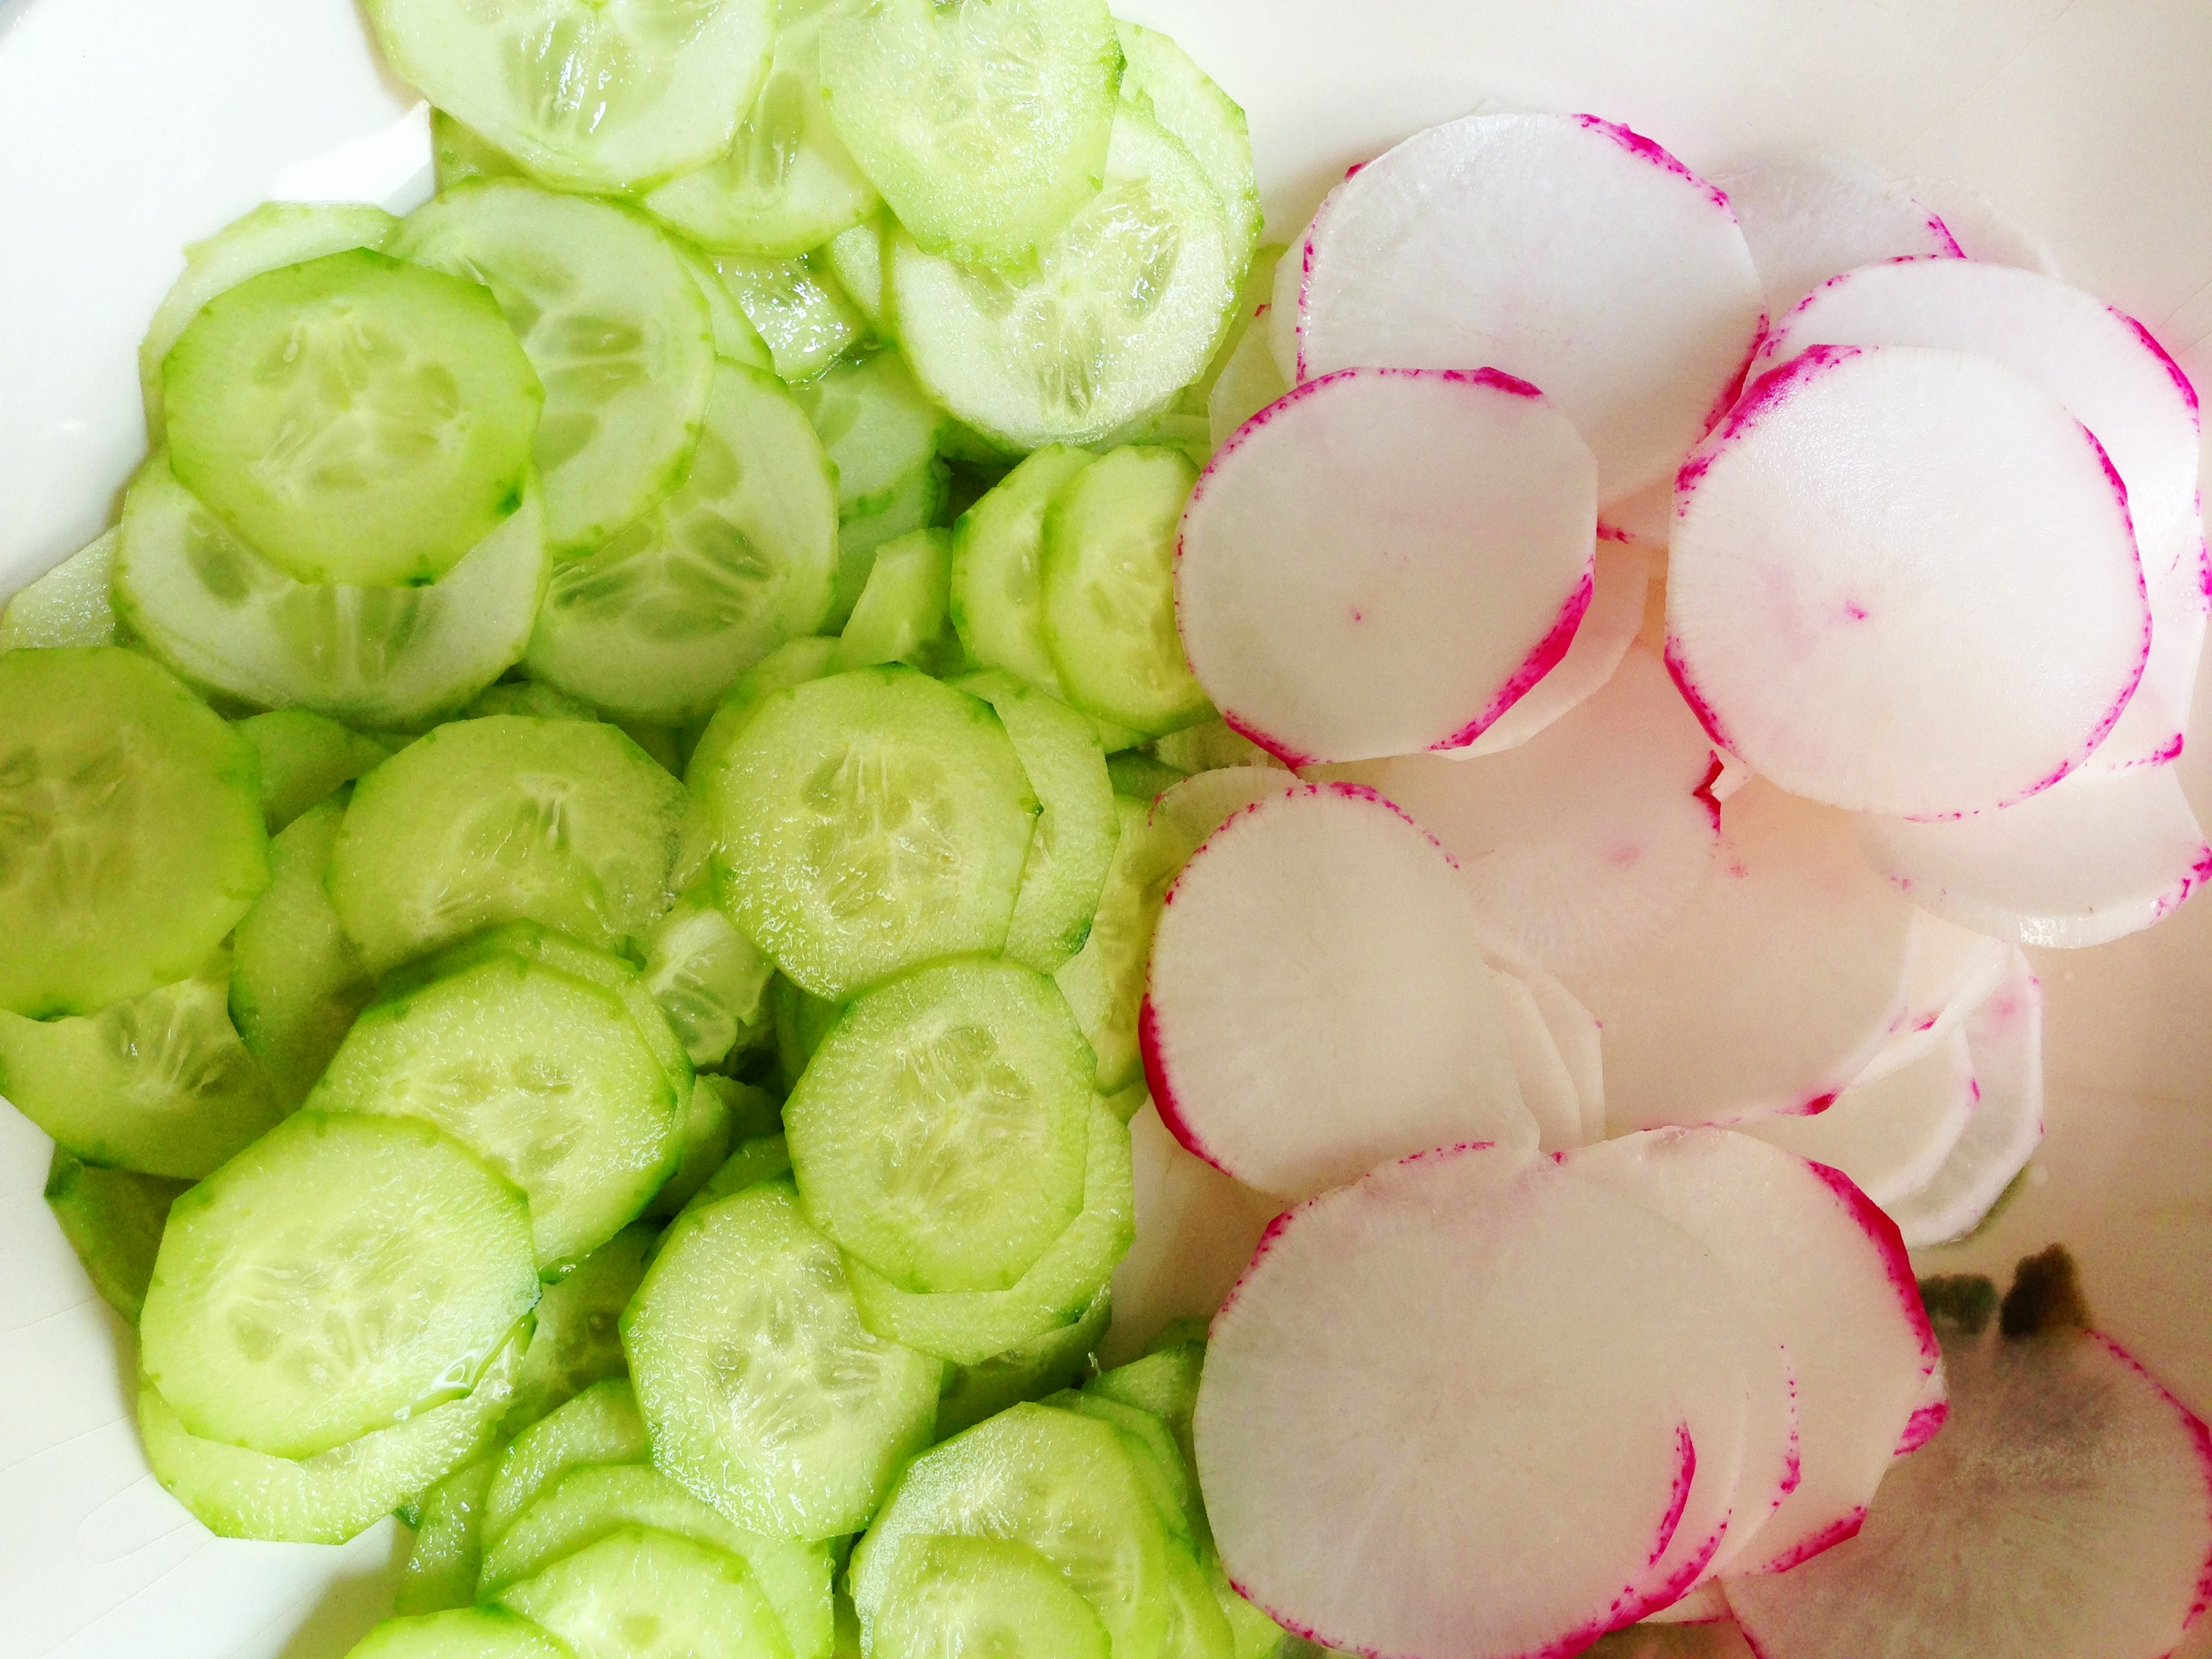 cukes and radishes